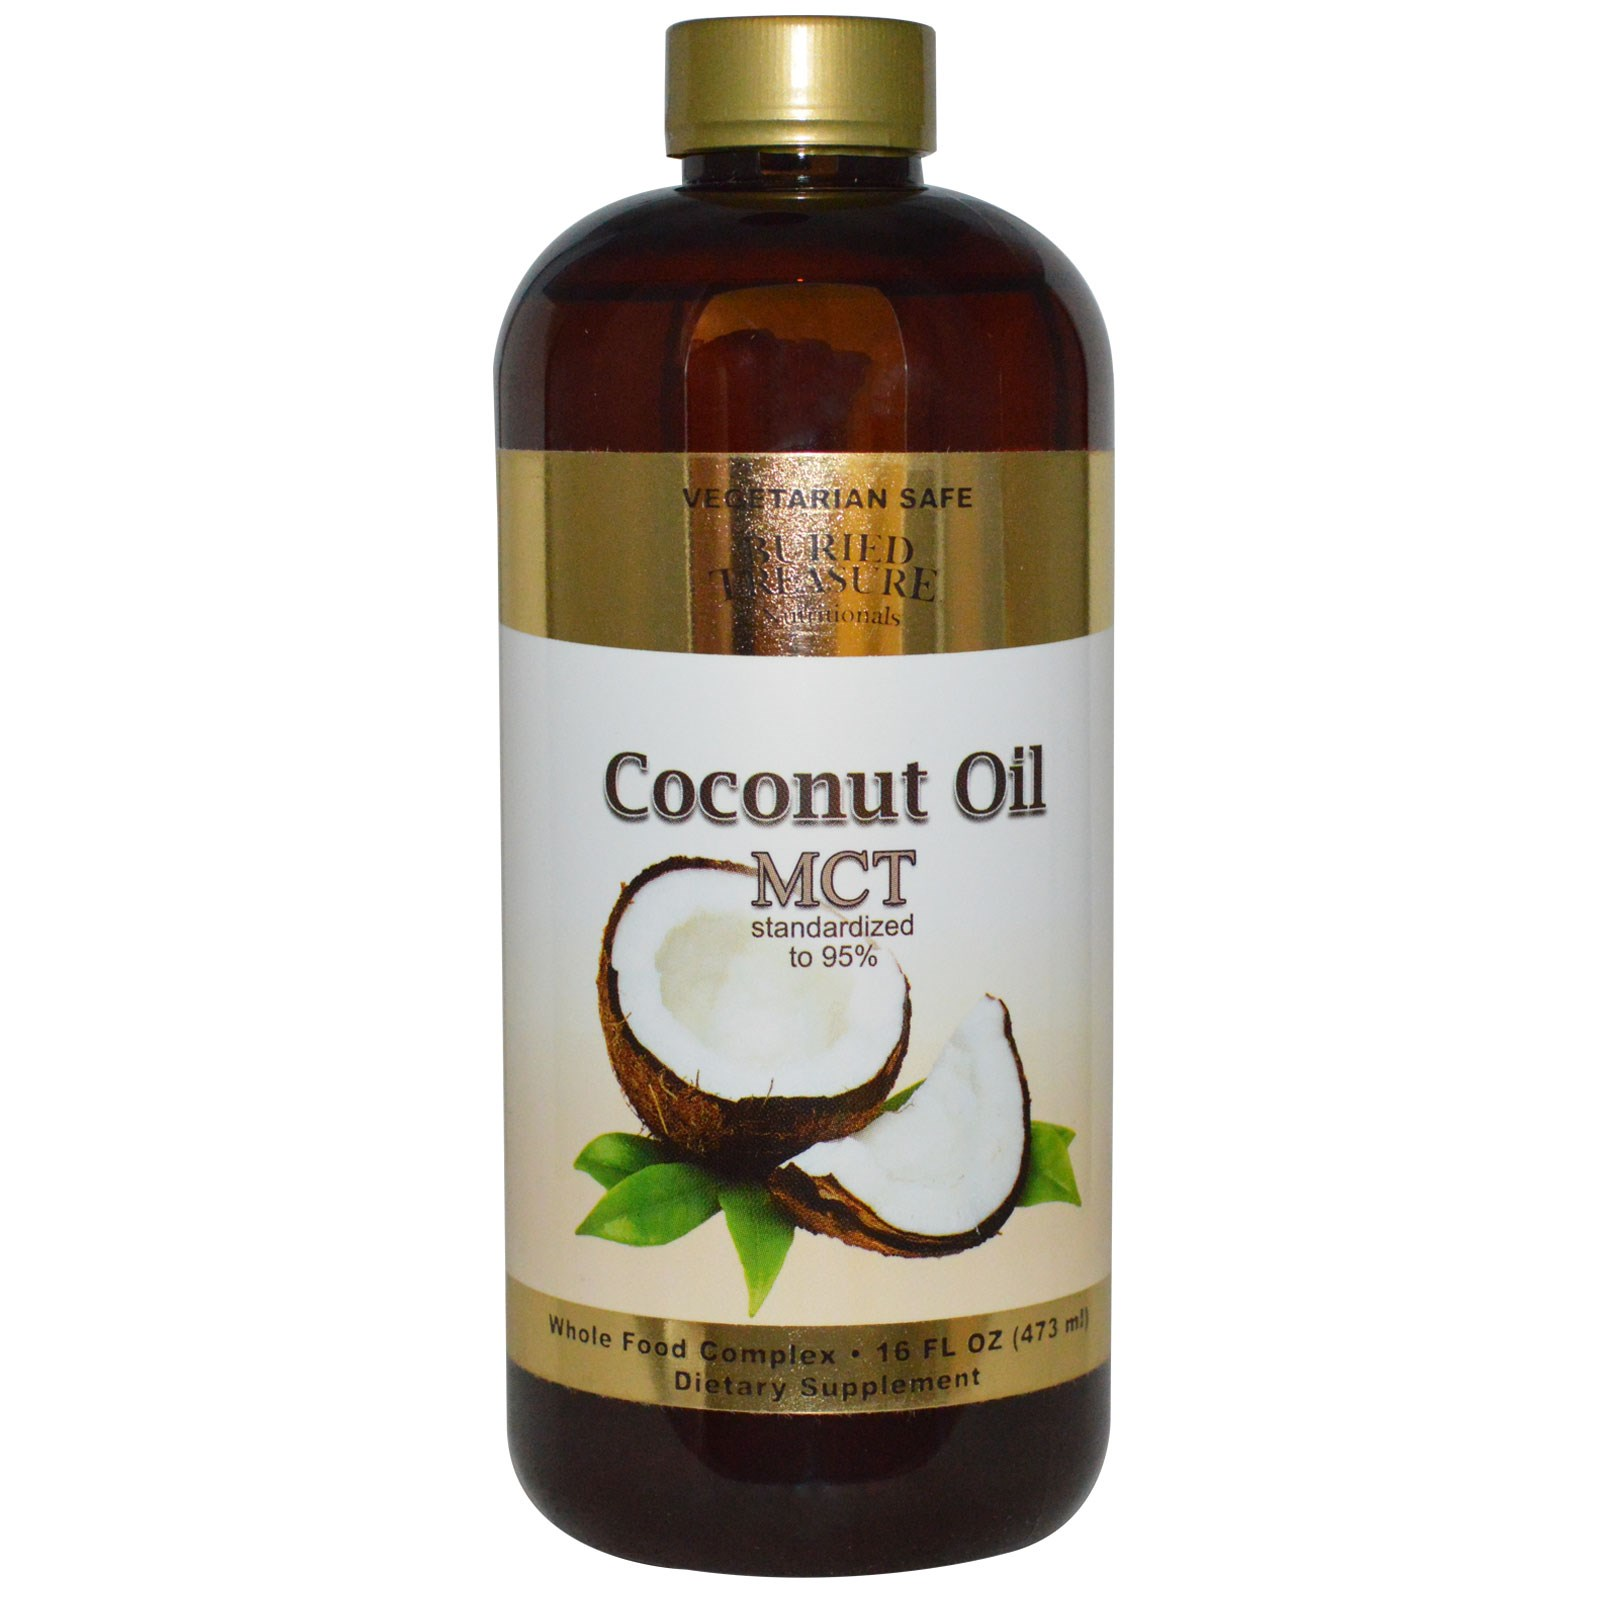 Mct oil and coconut oil